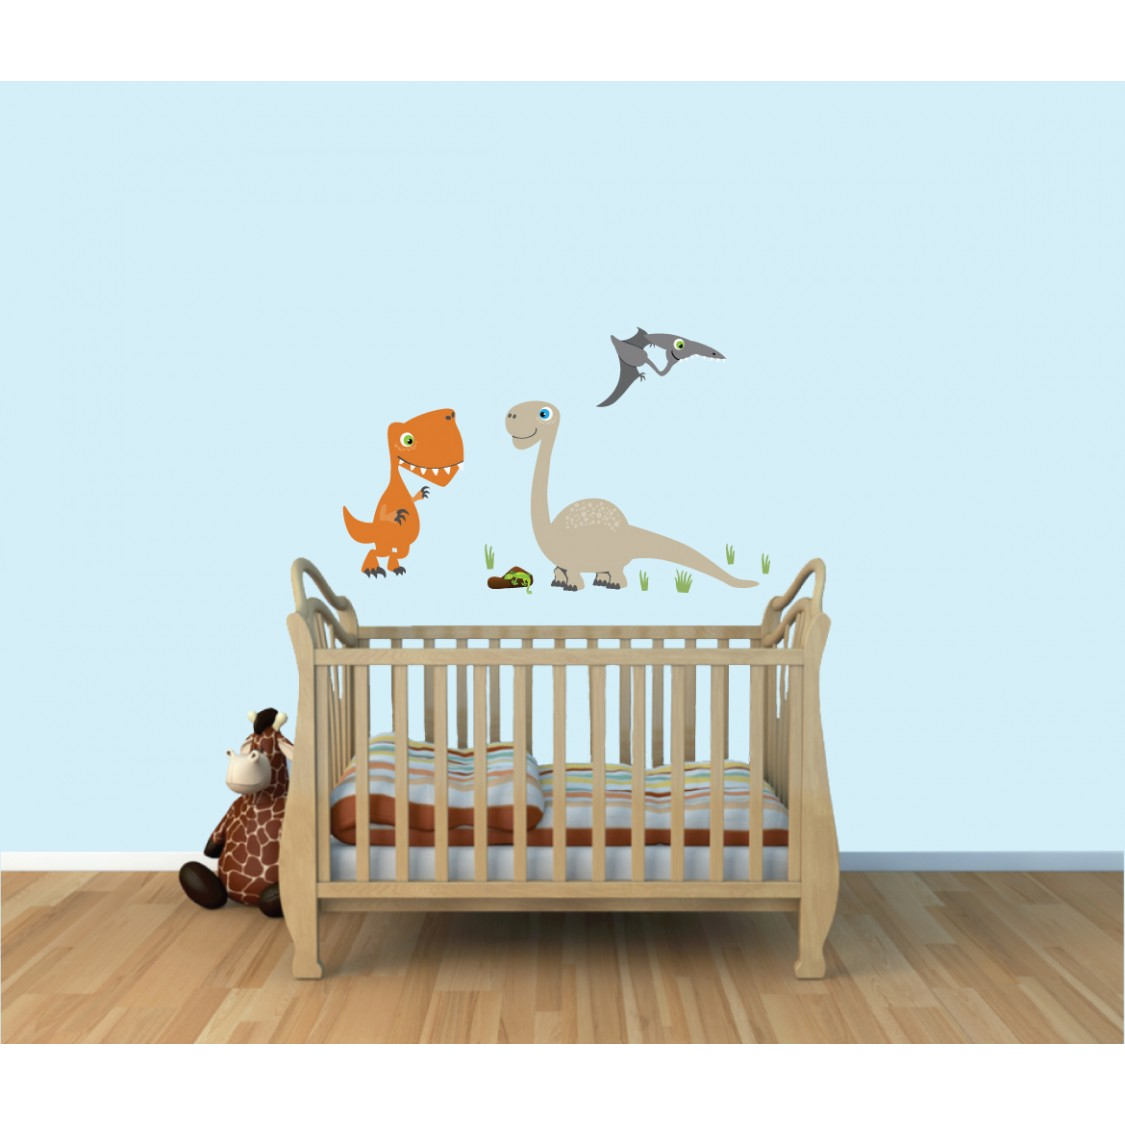 Kids Removable Wall Decals With Dinosaur Wall Murals For Kids Rooms